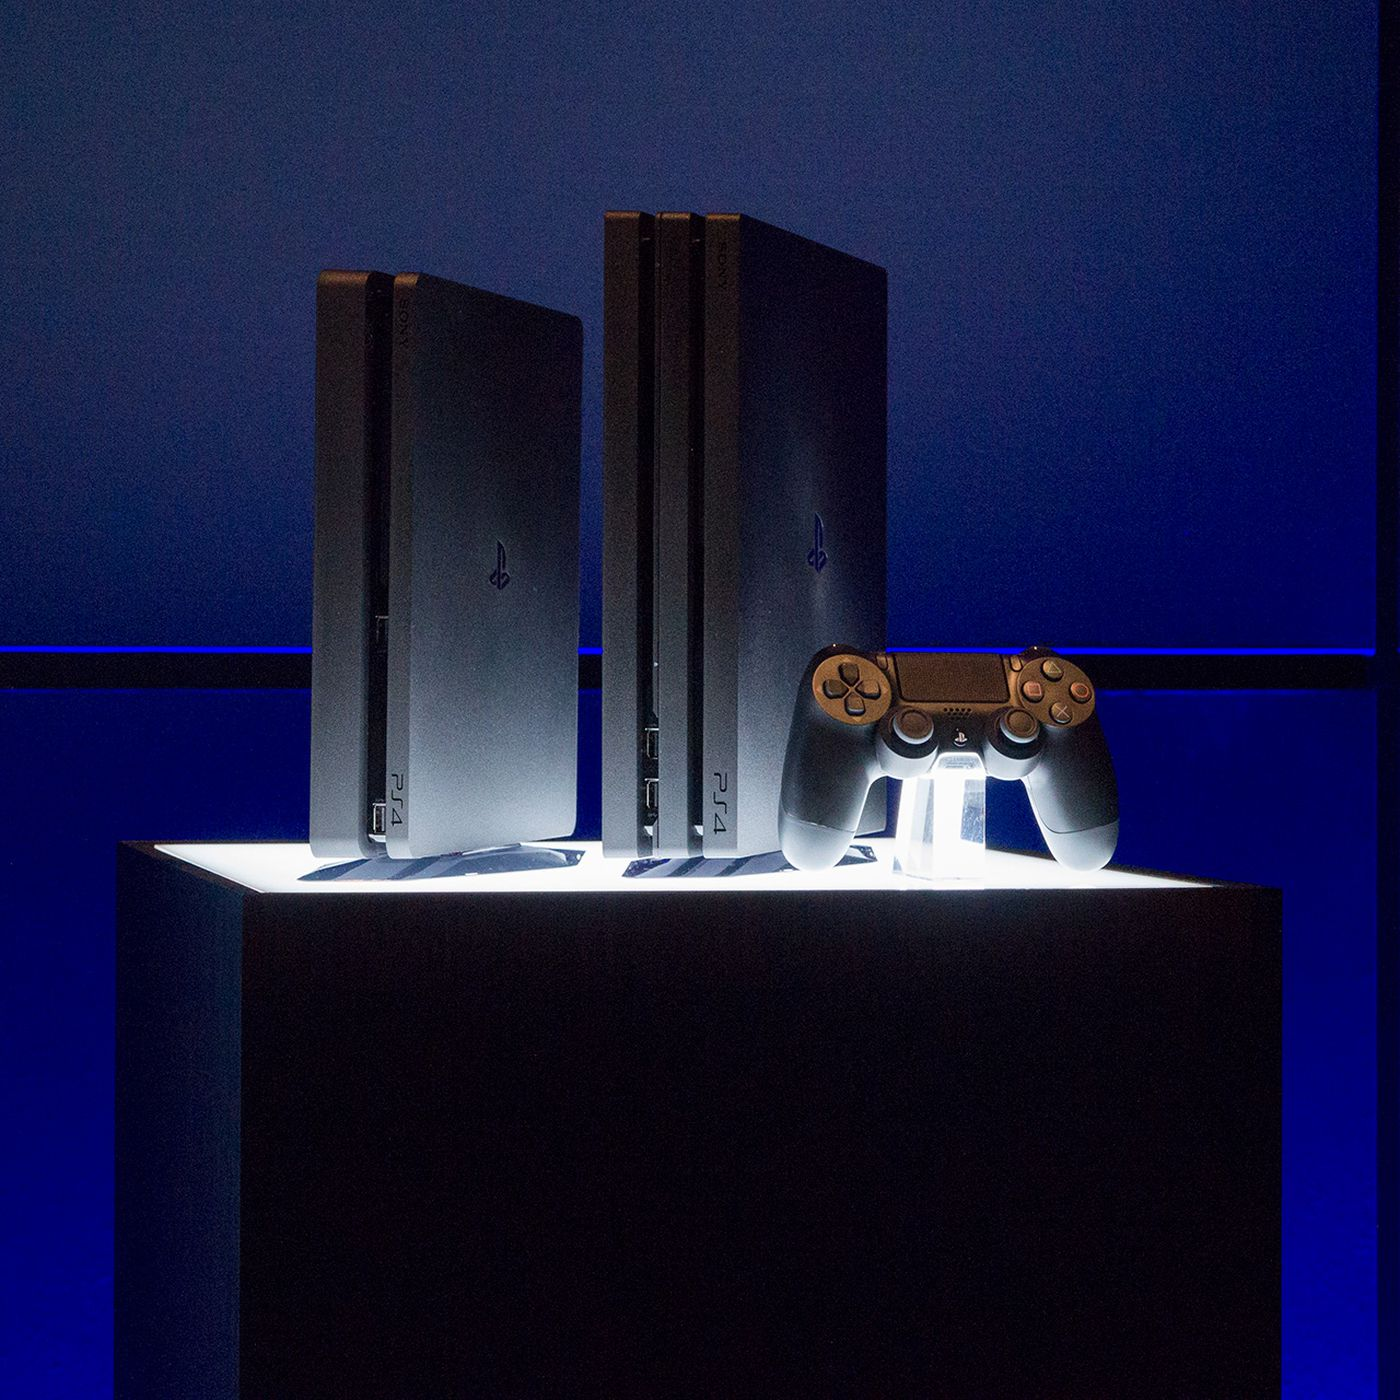 PS4 Pro gets more than 40 optimized launch games, here's the